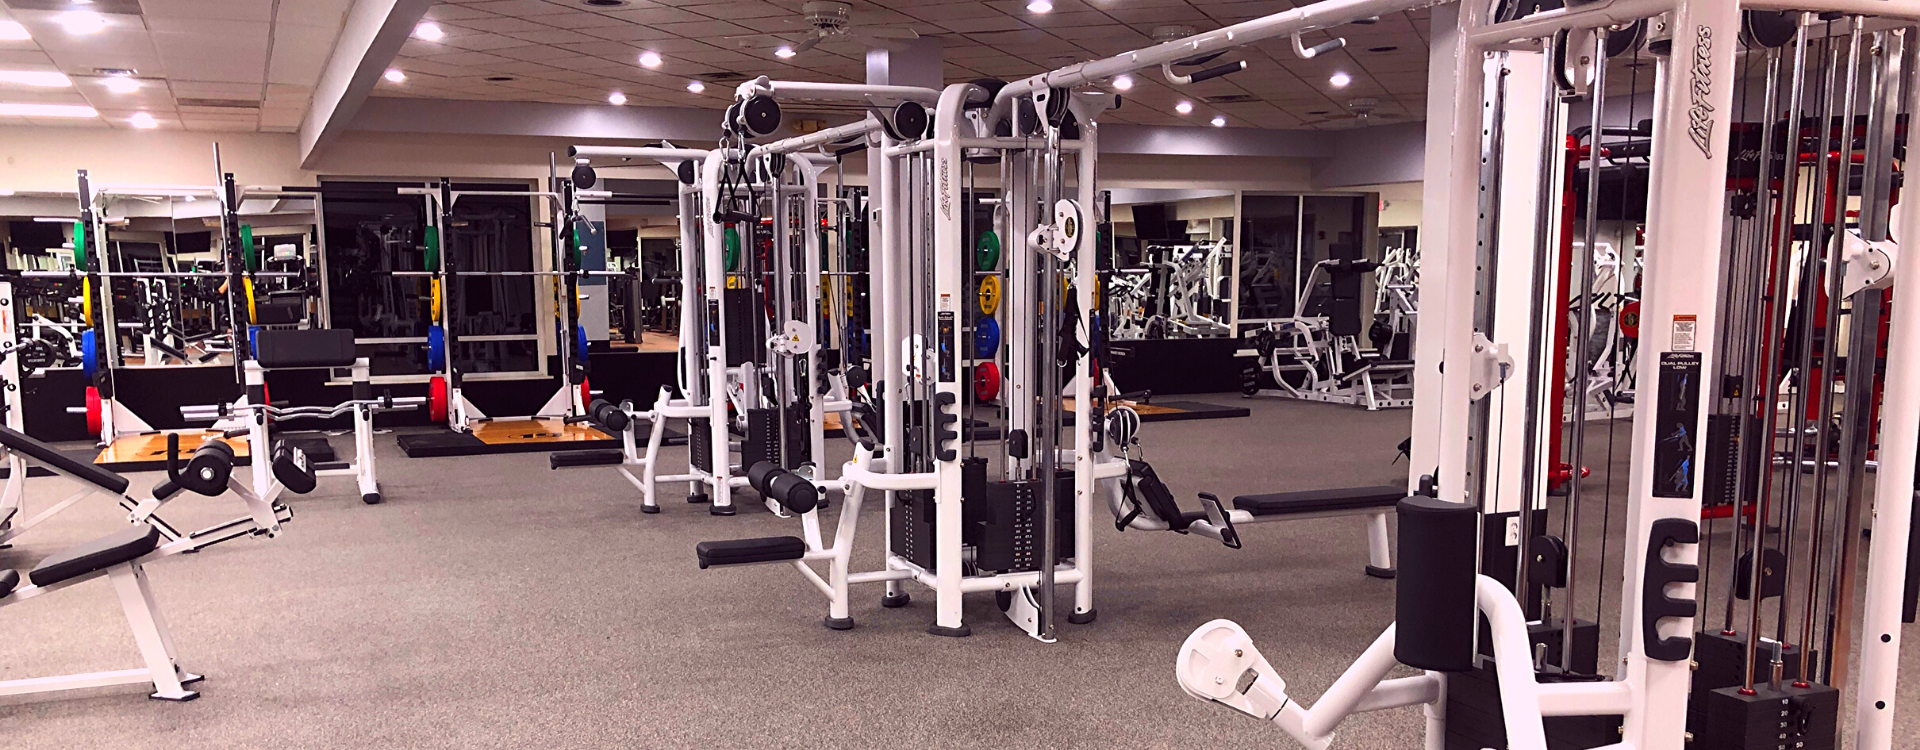 strength training cable machines at the gym in a Fitness 19 location